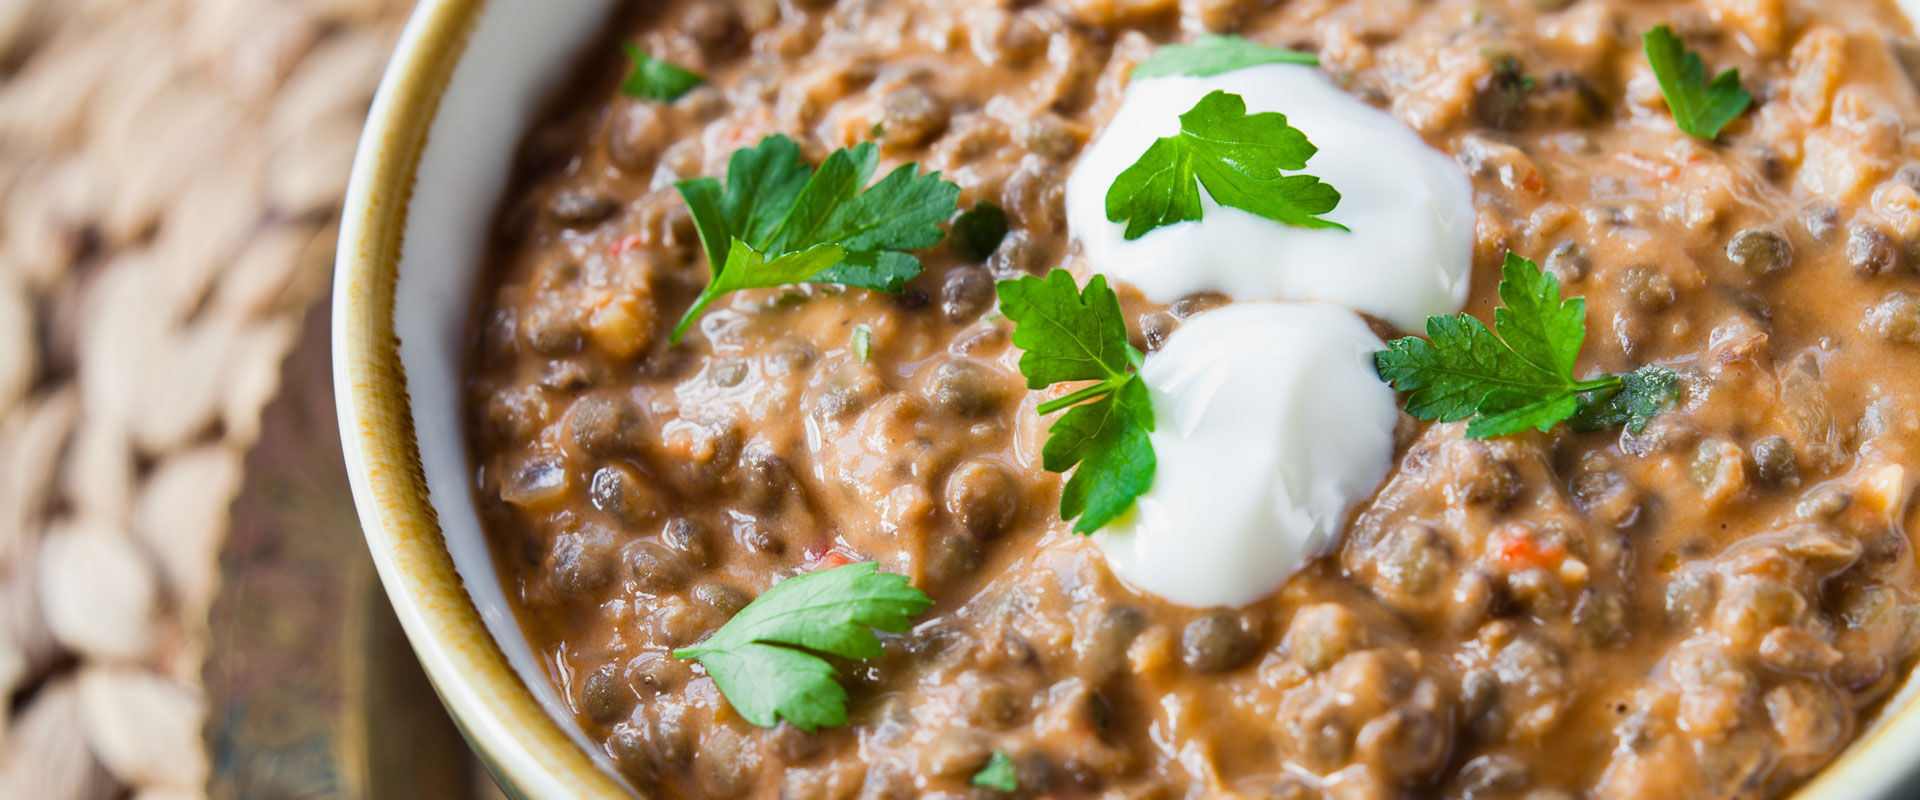 Four-spice-green-lentils